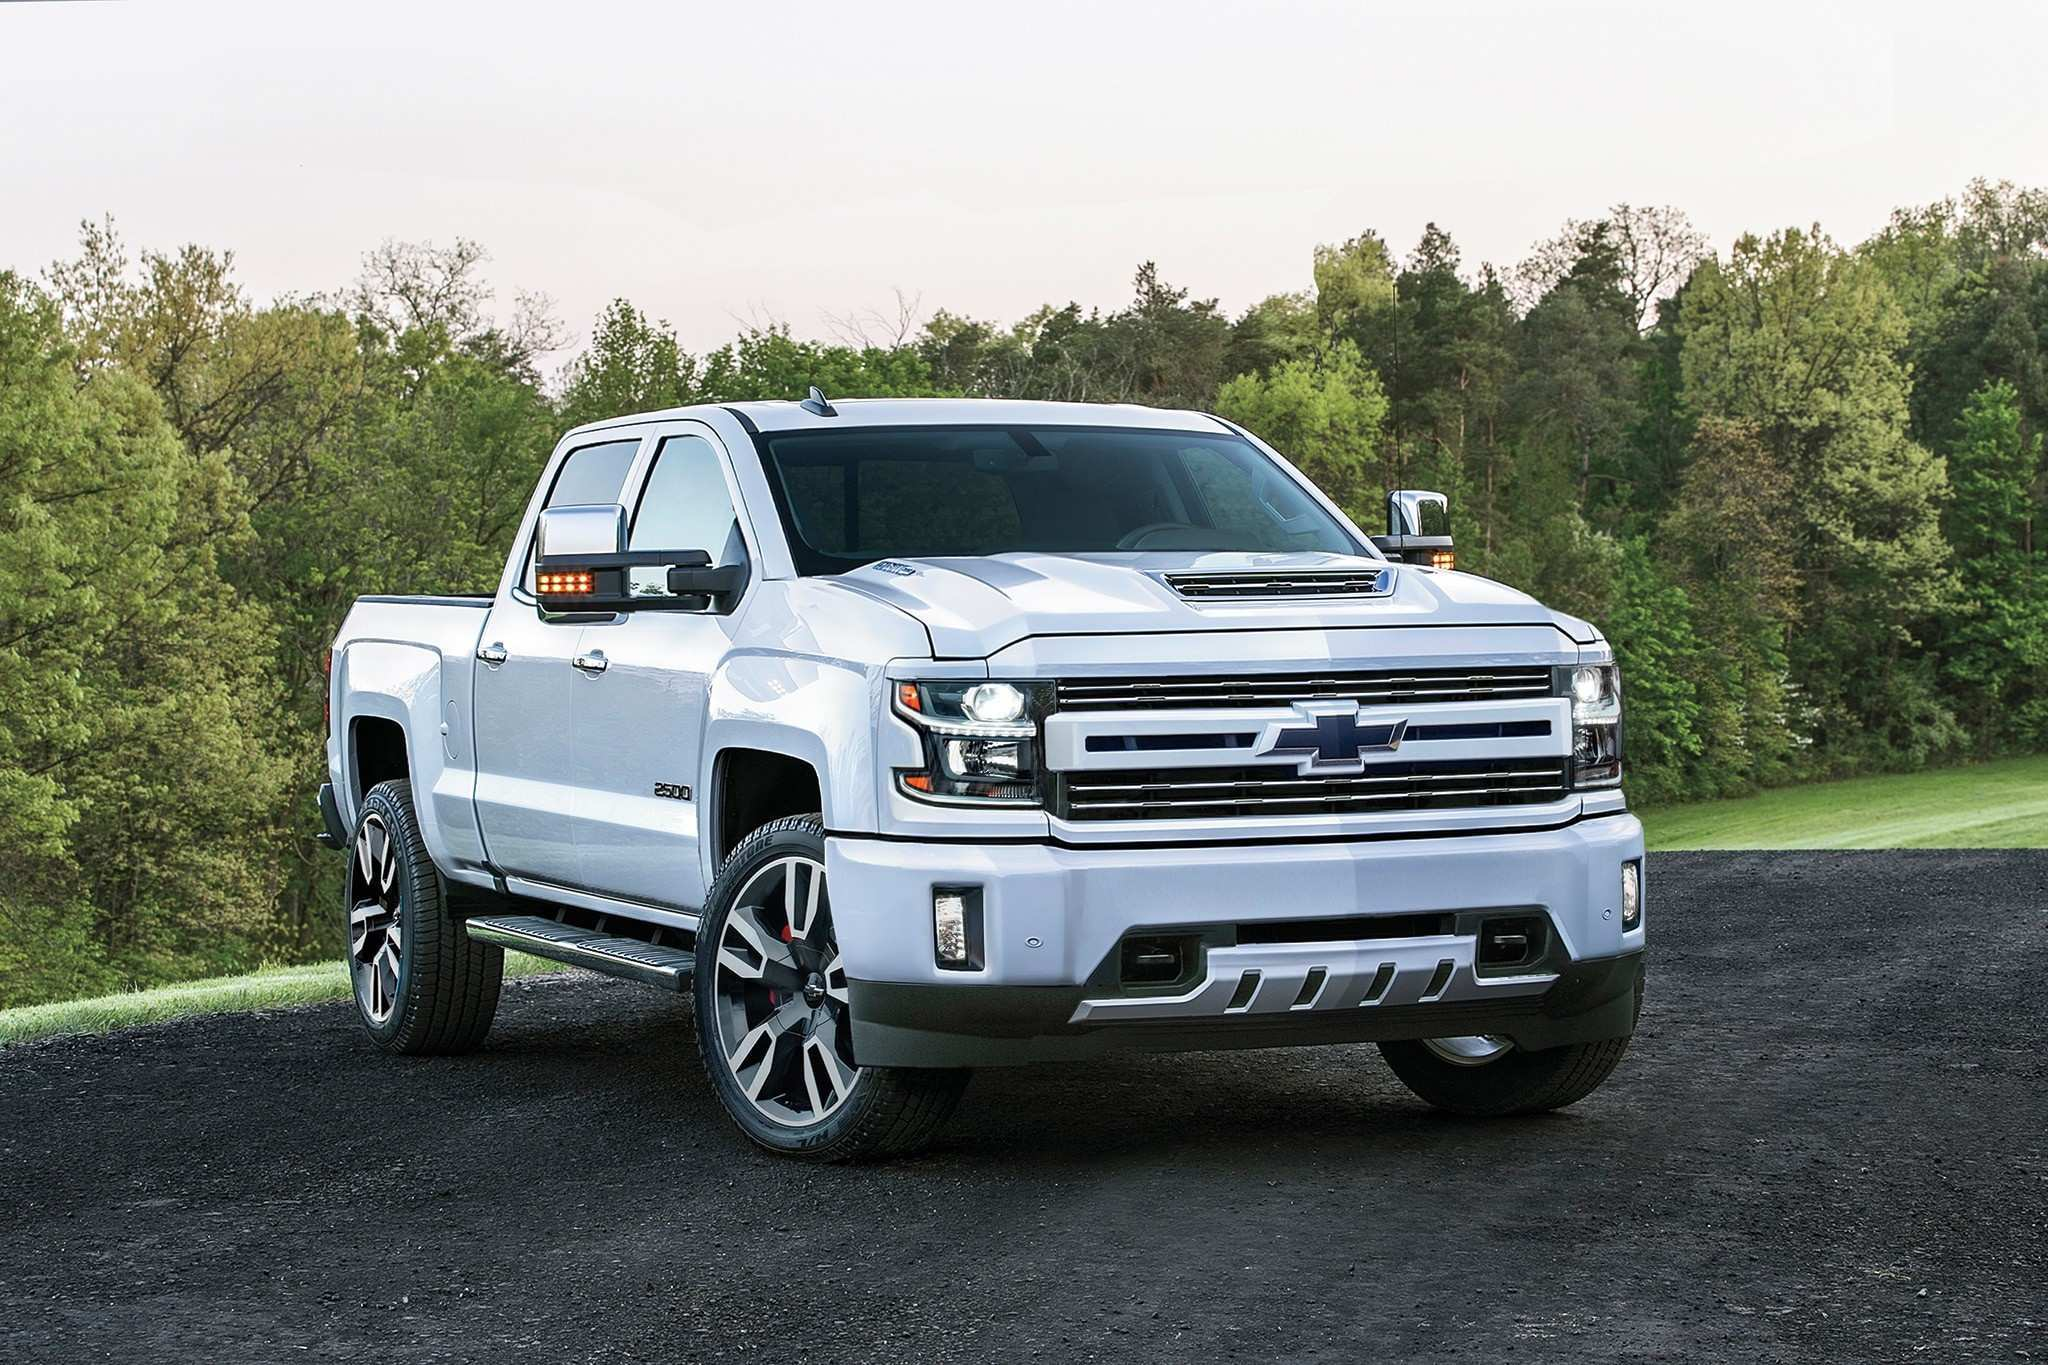 96 The 2020 Chevy 2500Hd Duramax Rumors with 2020 Chevy 2500Hd Duramax